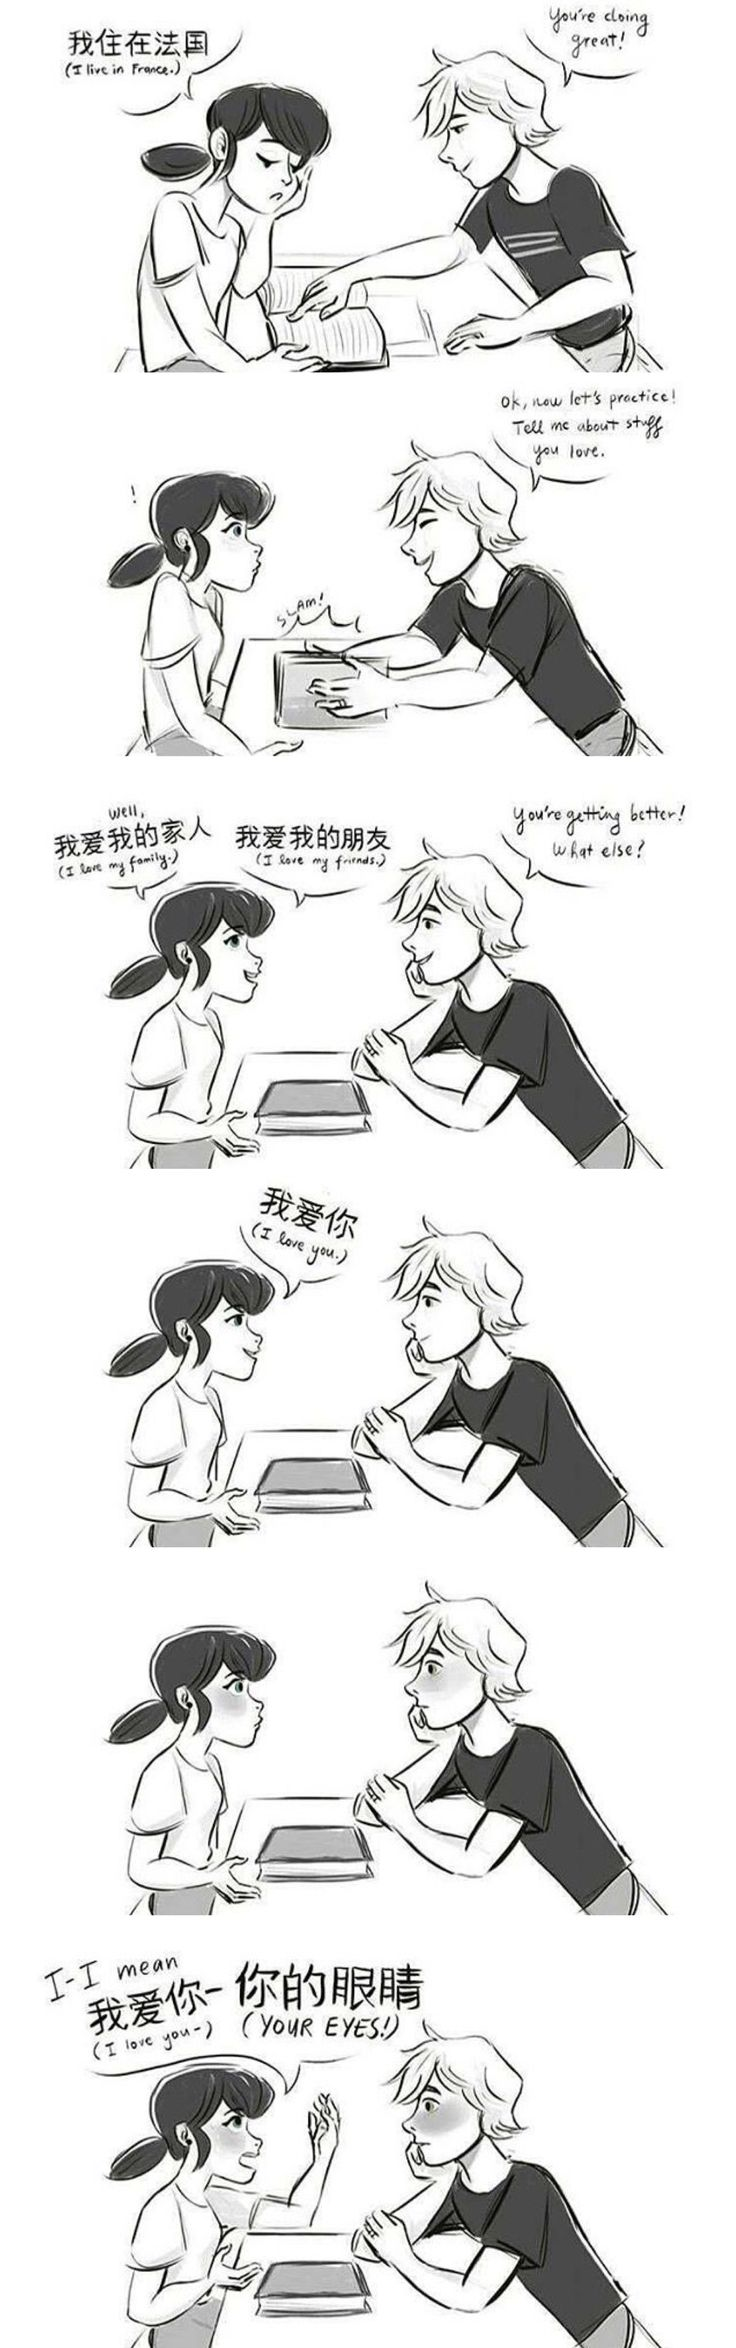 Marinette practicing Chinese with Adrien....what could go wrong - Miraculous Tales of Ladybug and Chat Noir